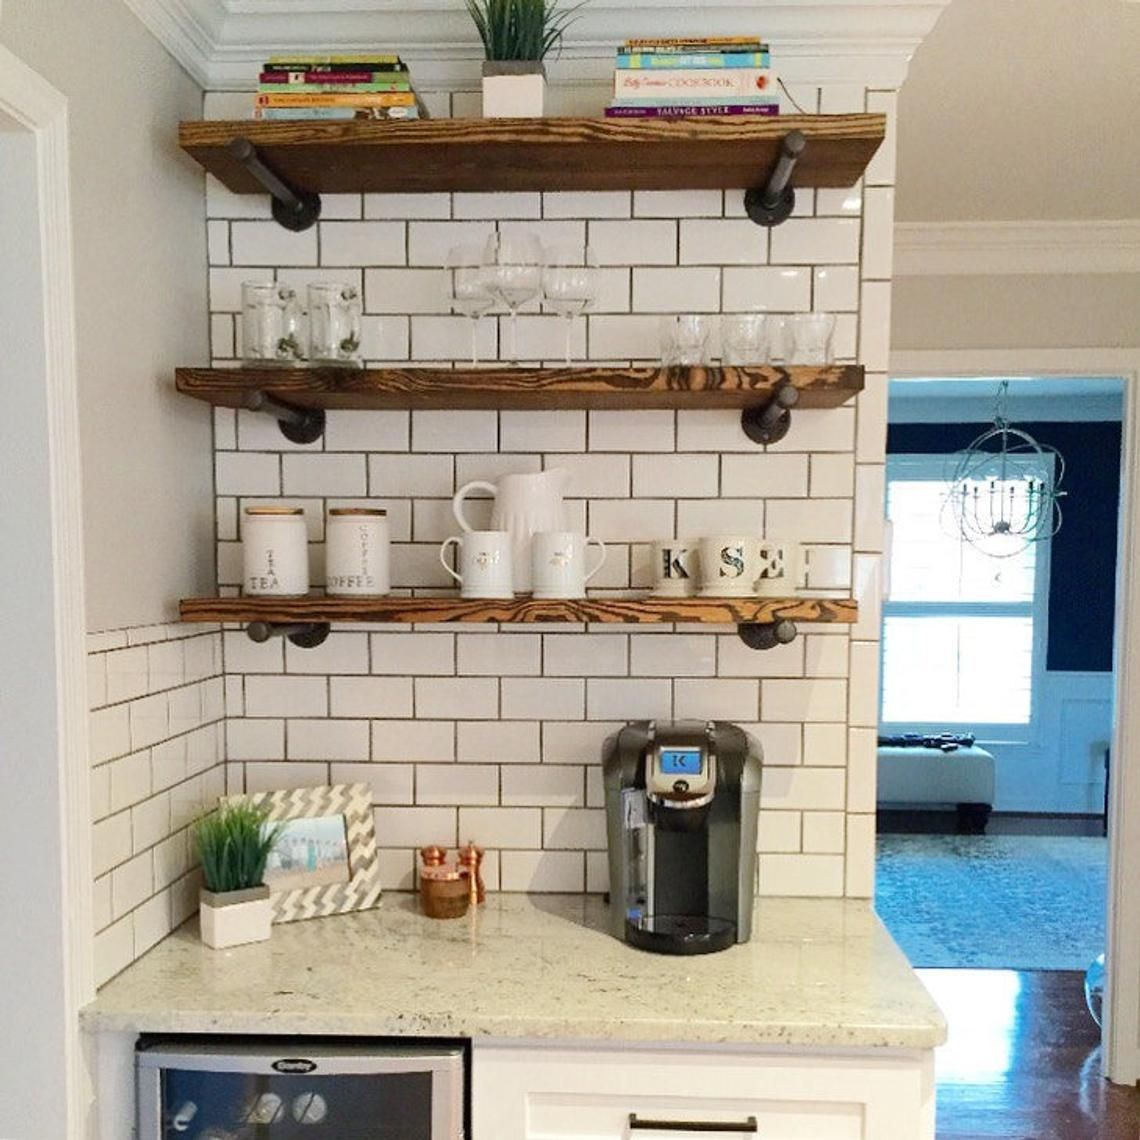 industrial floating shelves depth book shelf open kitchen creative wooden wall bracket for cable box crown molding mantle laying peel and stick flooring black wood island casters